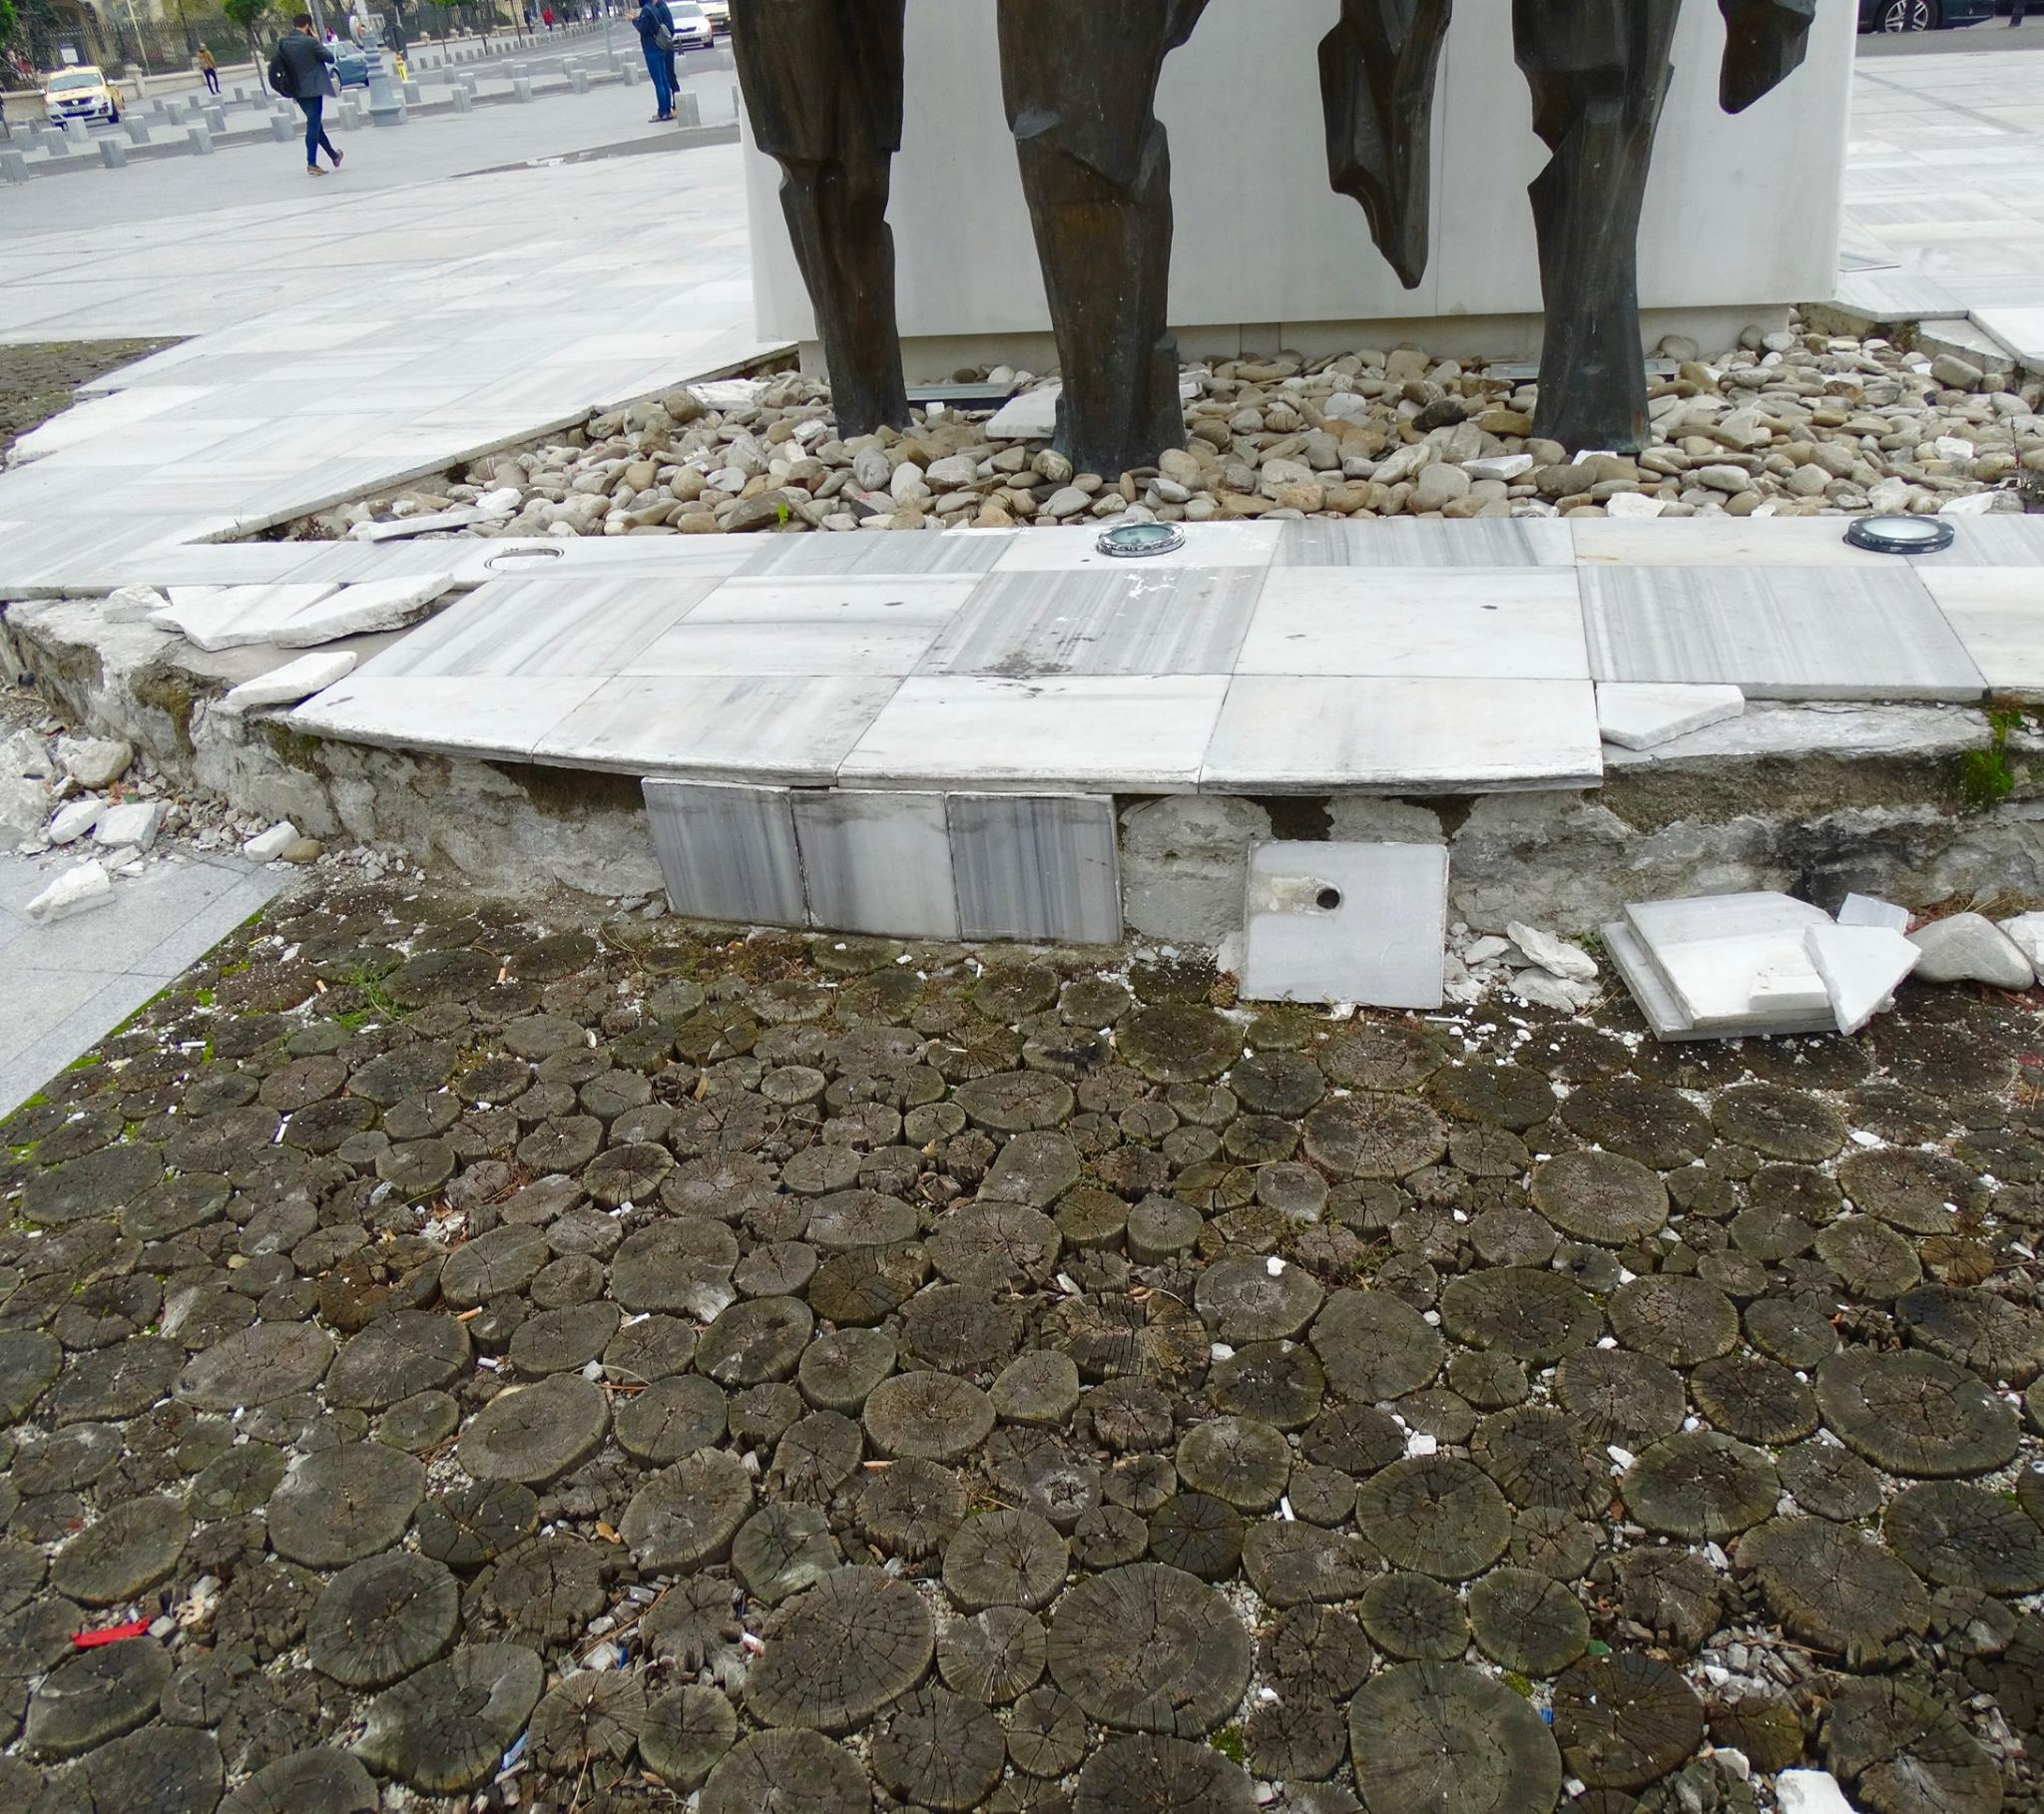 The path to the memorial is made up of cut-down trees, which symbolize the lives of Romanians who were killed while overthrowing Ceauşesu's regime. You will notice that some of the stumps are big and others are small. This represents the fact that both young and old sacrificed themselves in the revolution.